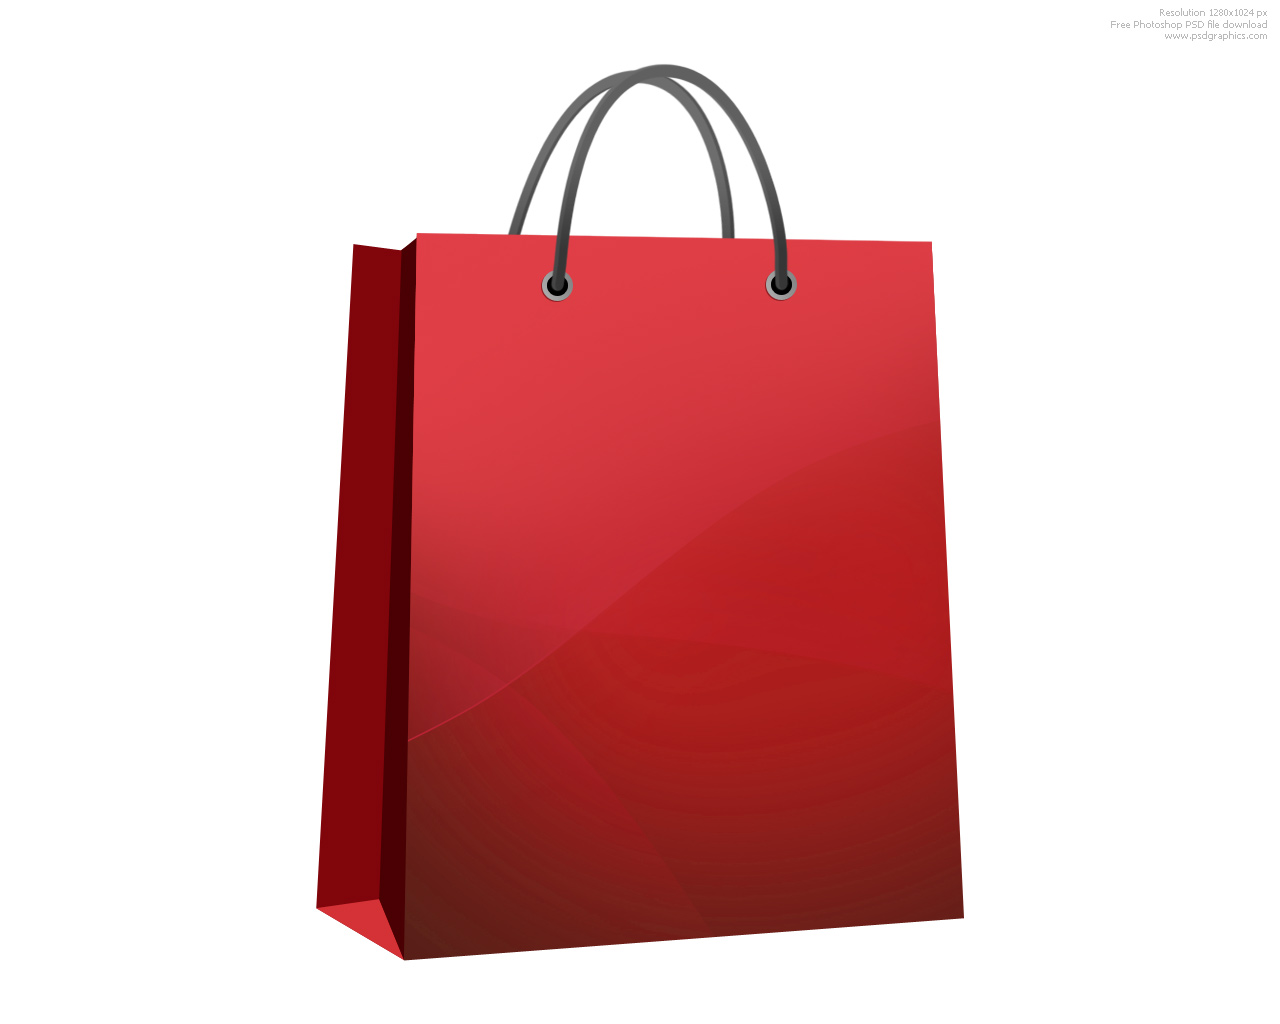 1280x1024 Shopping Bags Shopping Bag Clipart Free Images 5 Wikiclipart